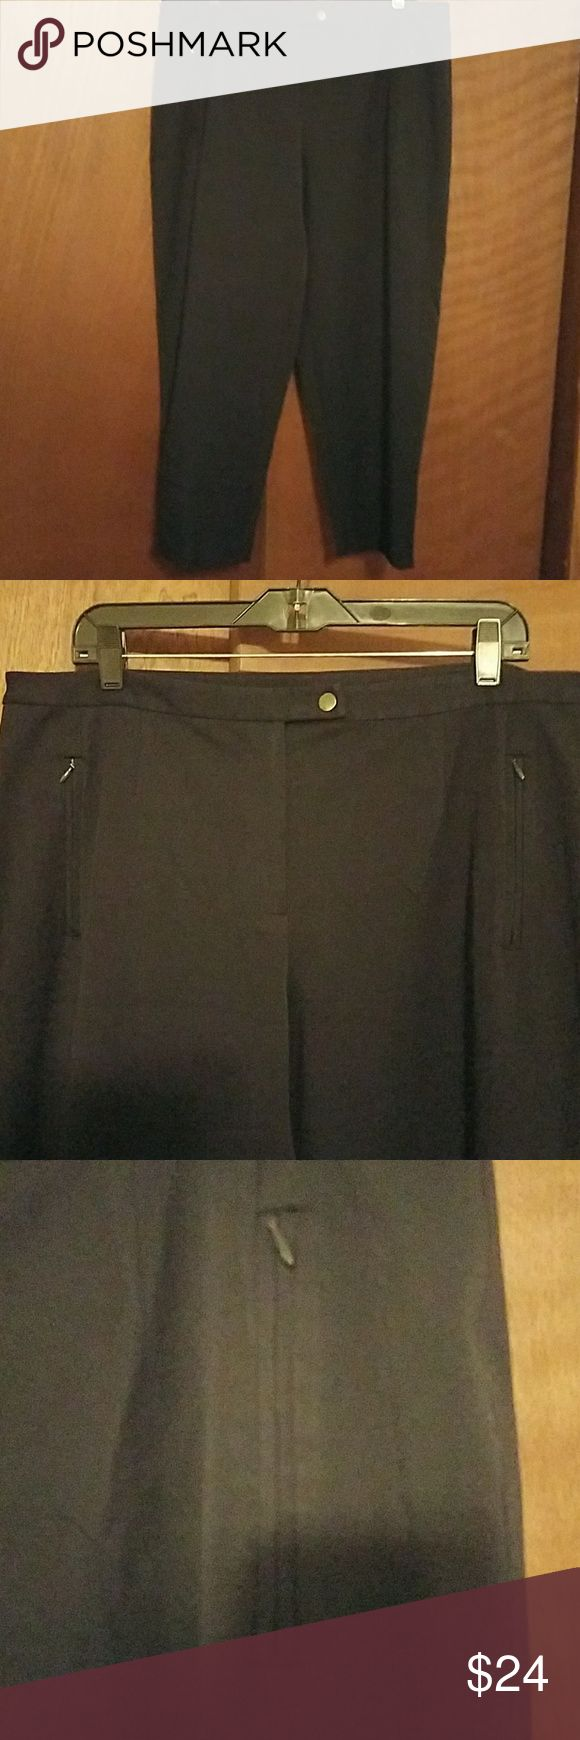 Talbots petite dress slacks Beautiful pair of Talbot's Petite dress slacks they've got a little bit of stretch to them. Zip-up pockets in the front side Very professional-looking. They look like brand-new I'm not sure they've ever been worn! Talbots women petites Pants Trousers